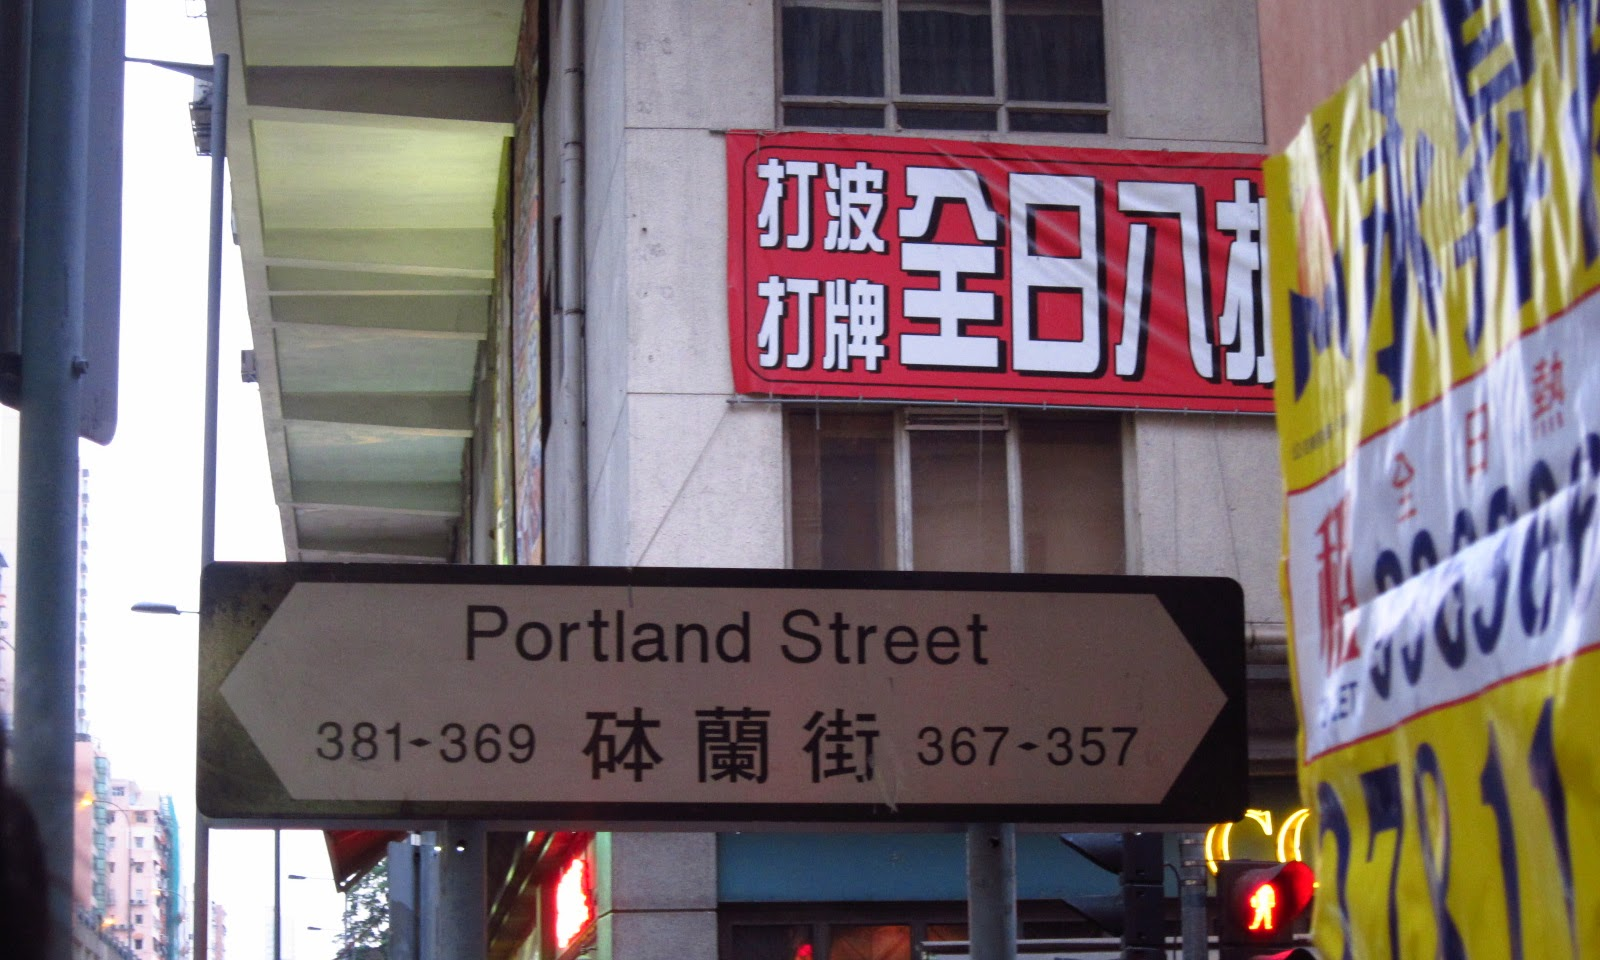 Hongkong 2011 Photolog - Day 3: Portland Street, Times Square and Yee Shun Milk Company